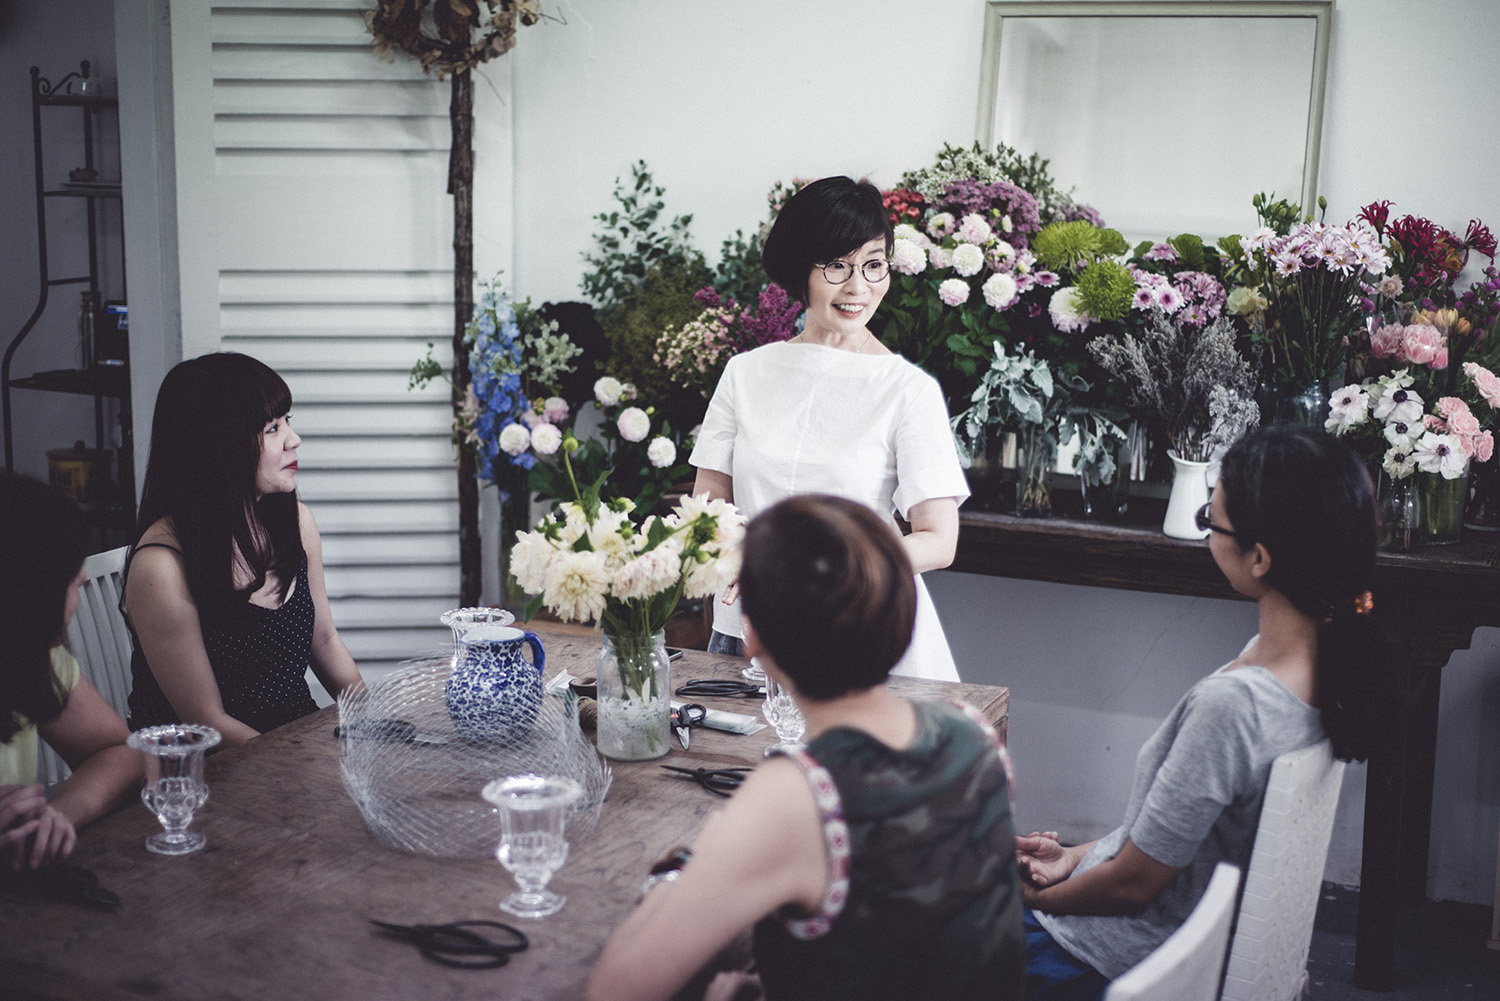 One of our talented student deeply immersed in a flower arrangement. You can be like her too.